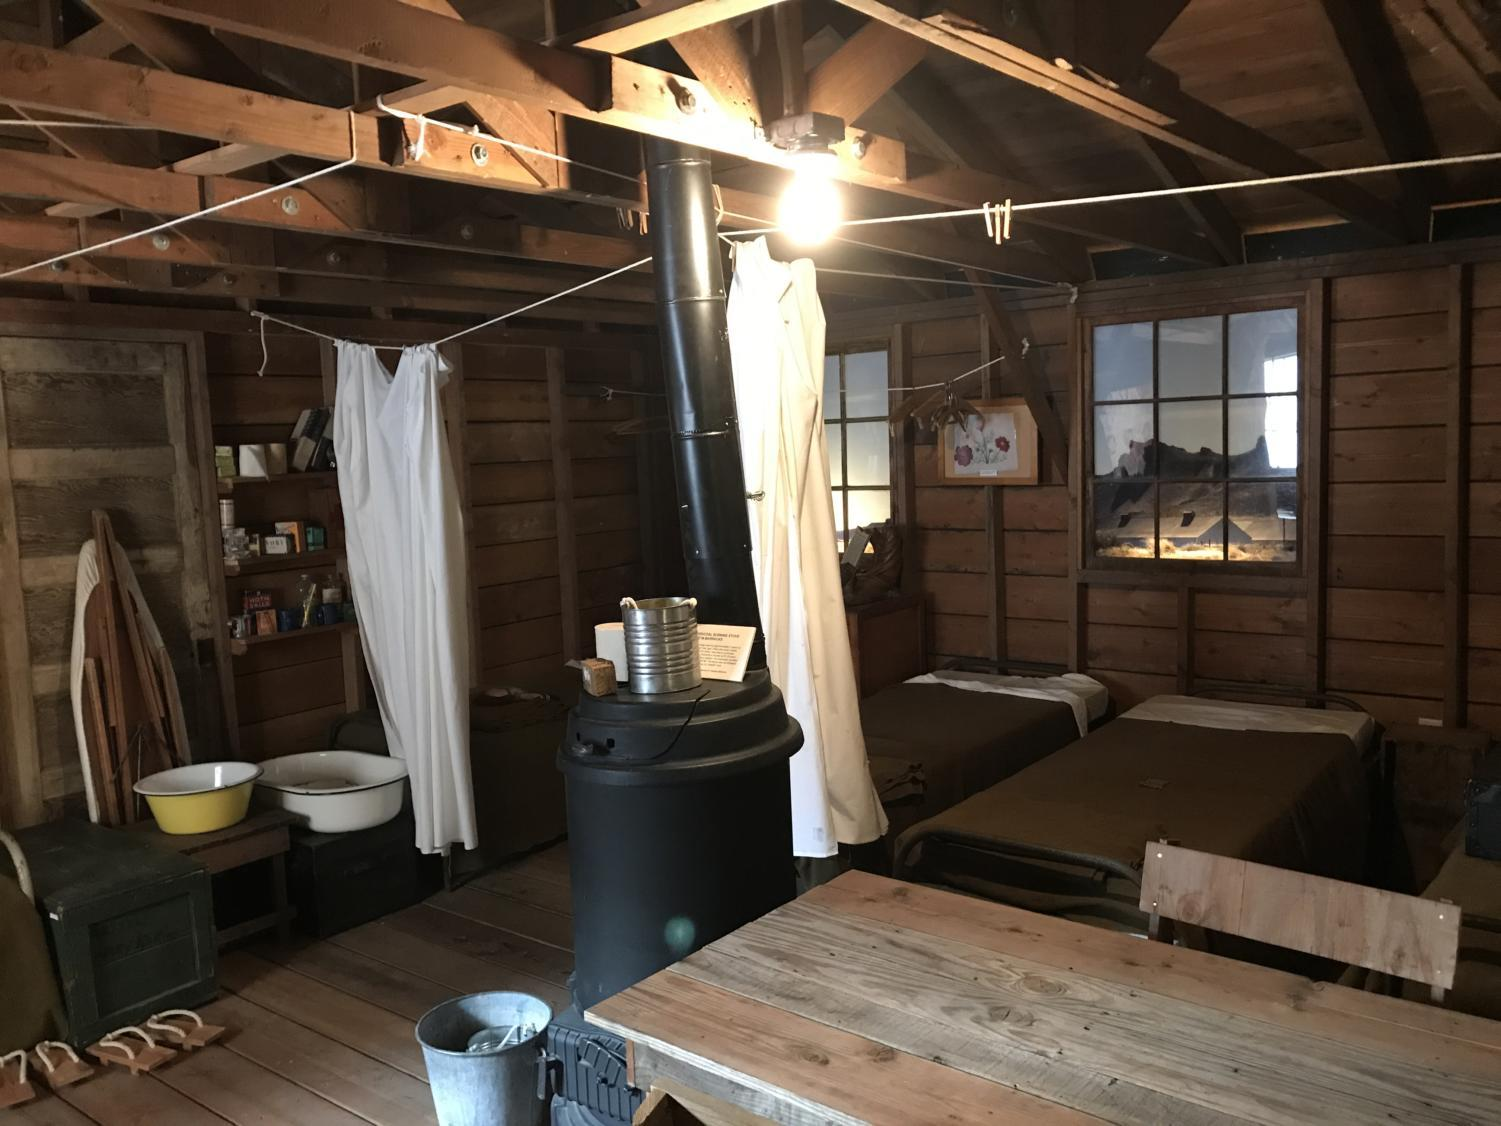 Many Japanese Americans were forced to stay in barracks like this model, which is assembled at the Japanese American Museum of San Jose.